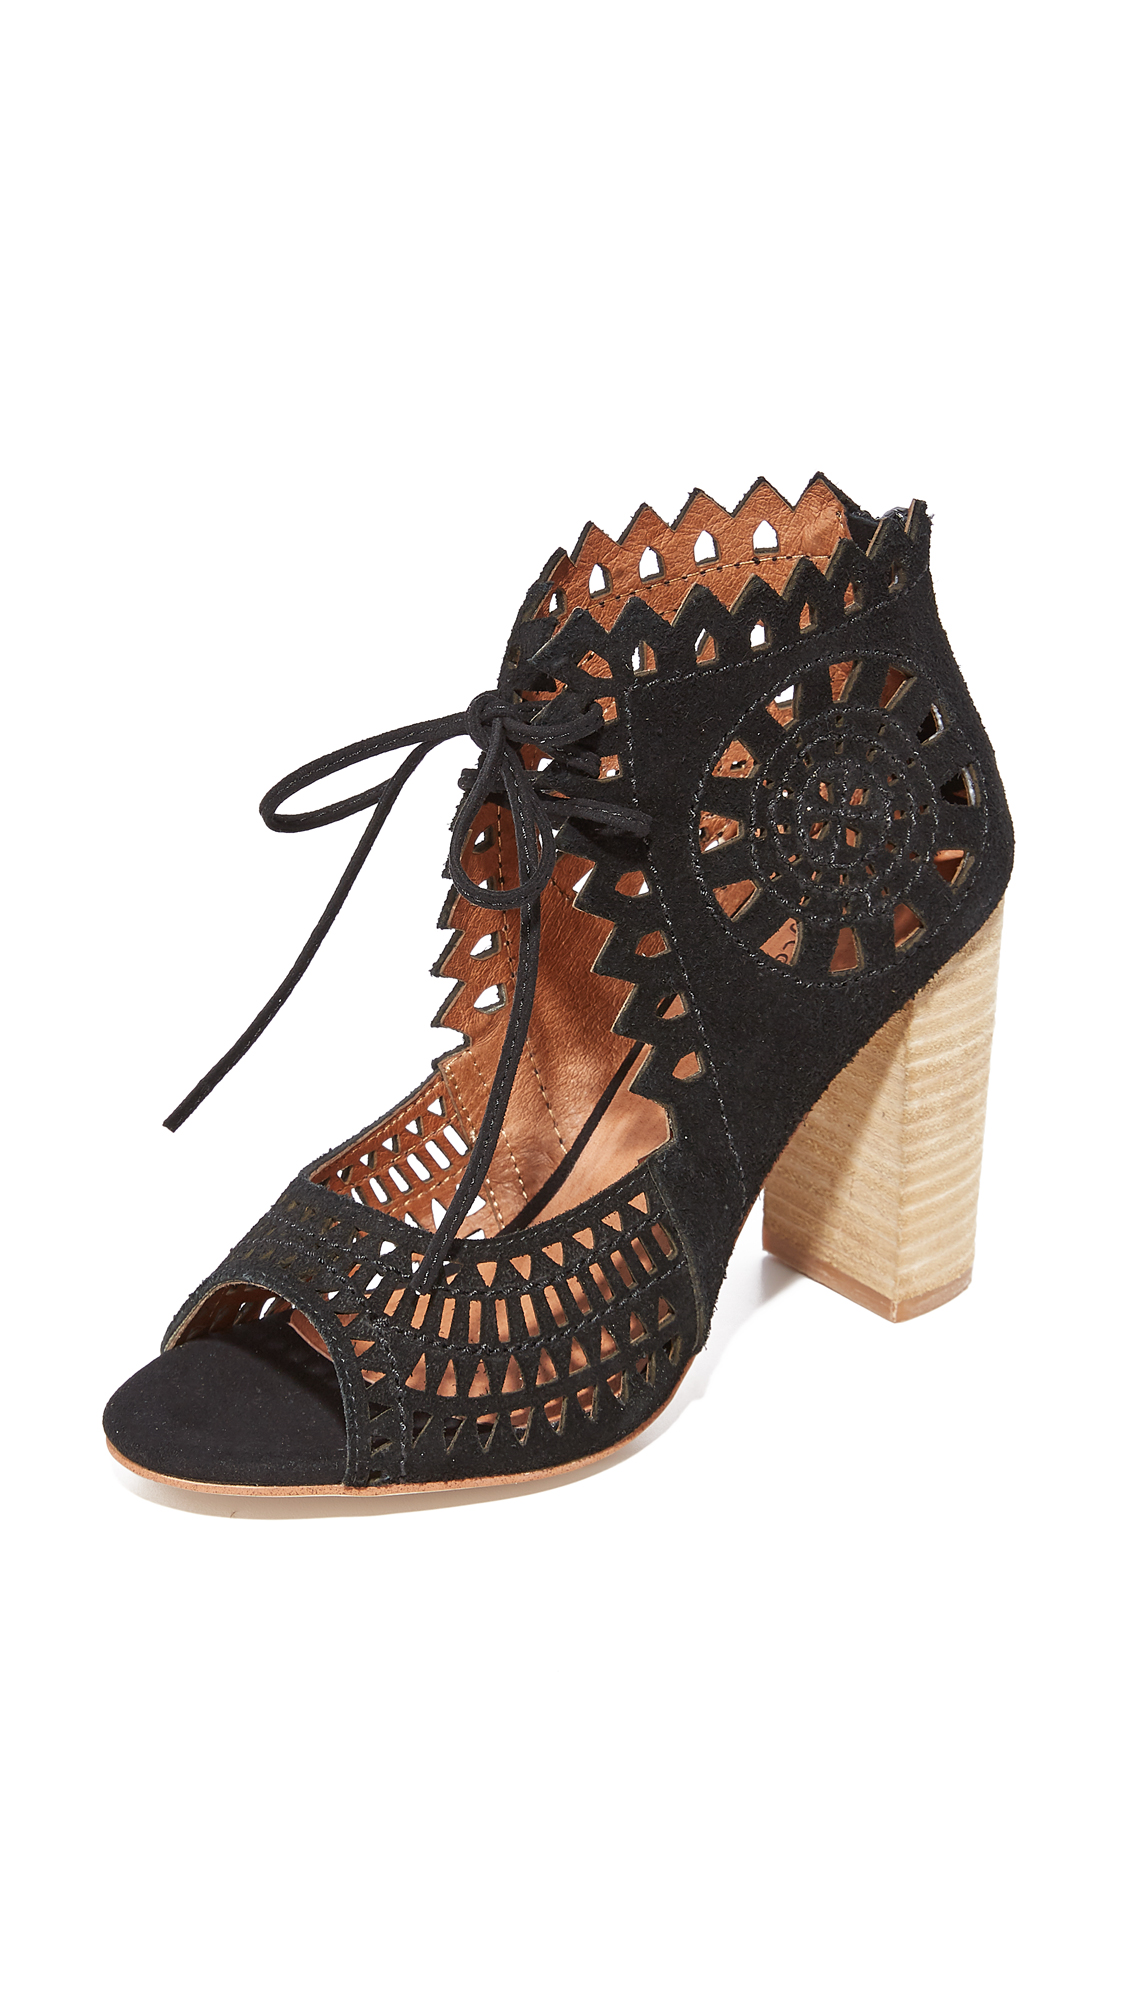 Jeffrey Campbell Cordia Sandals - Black/Natural